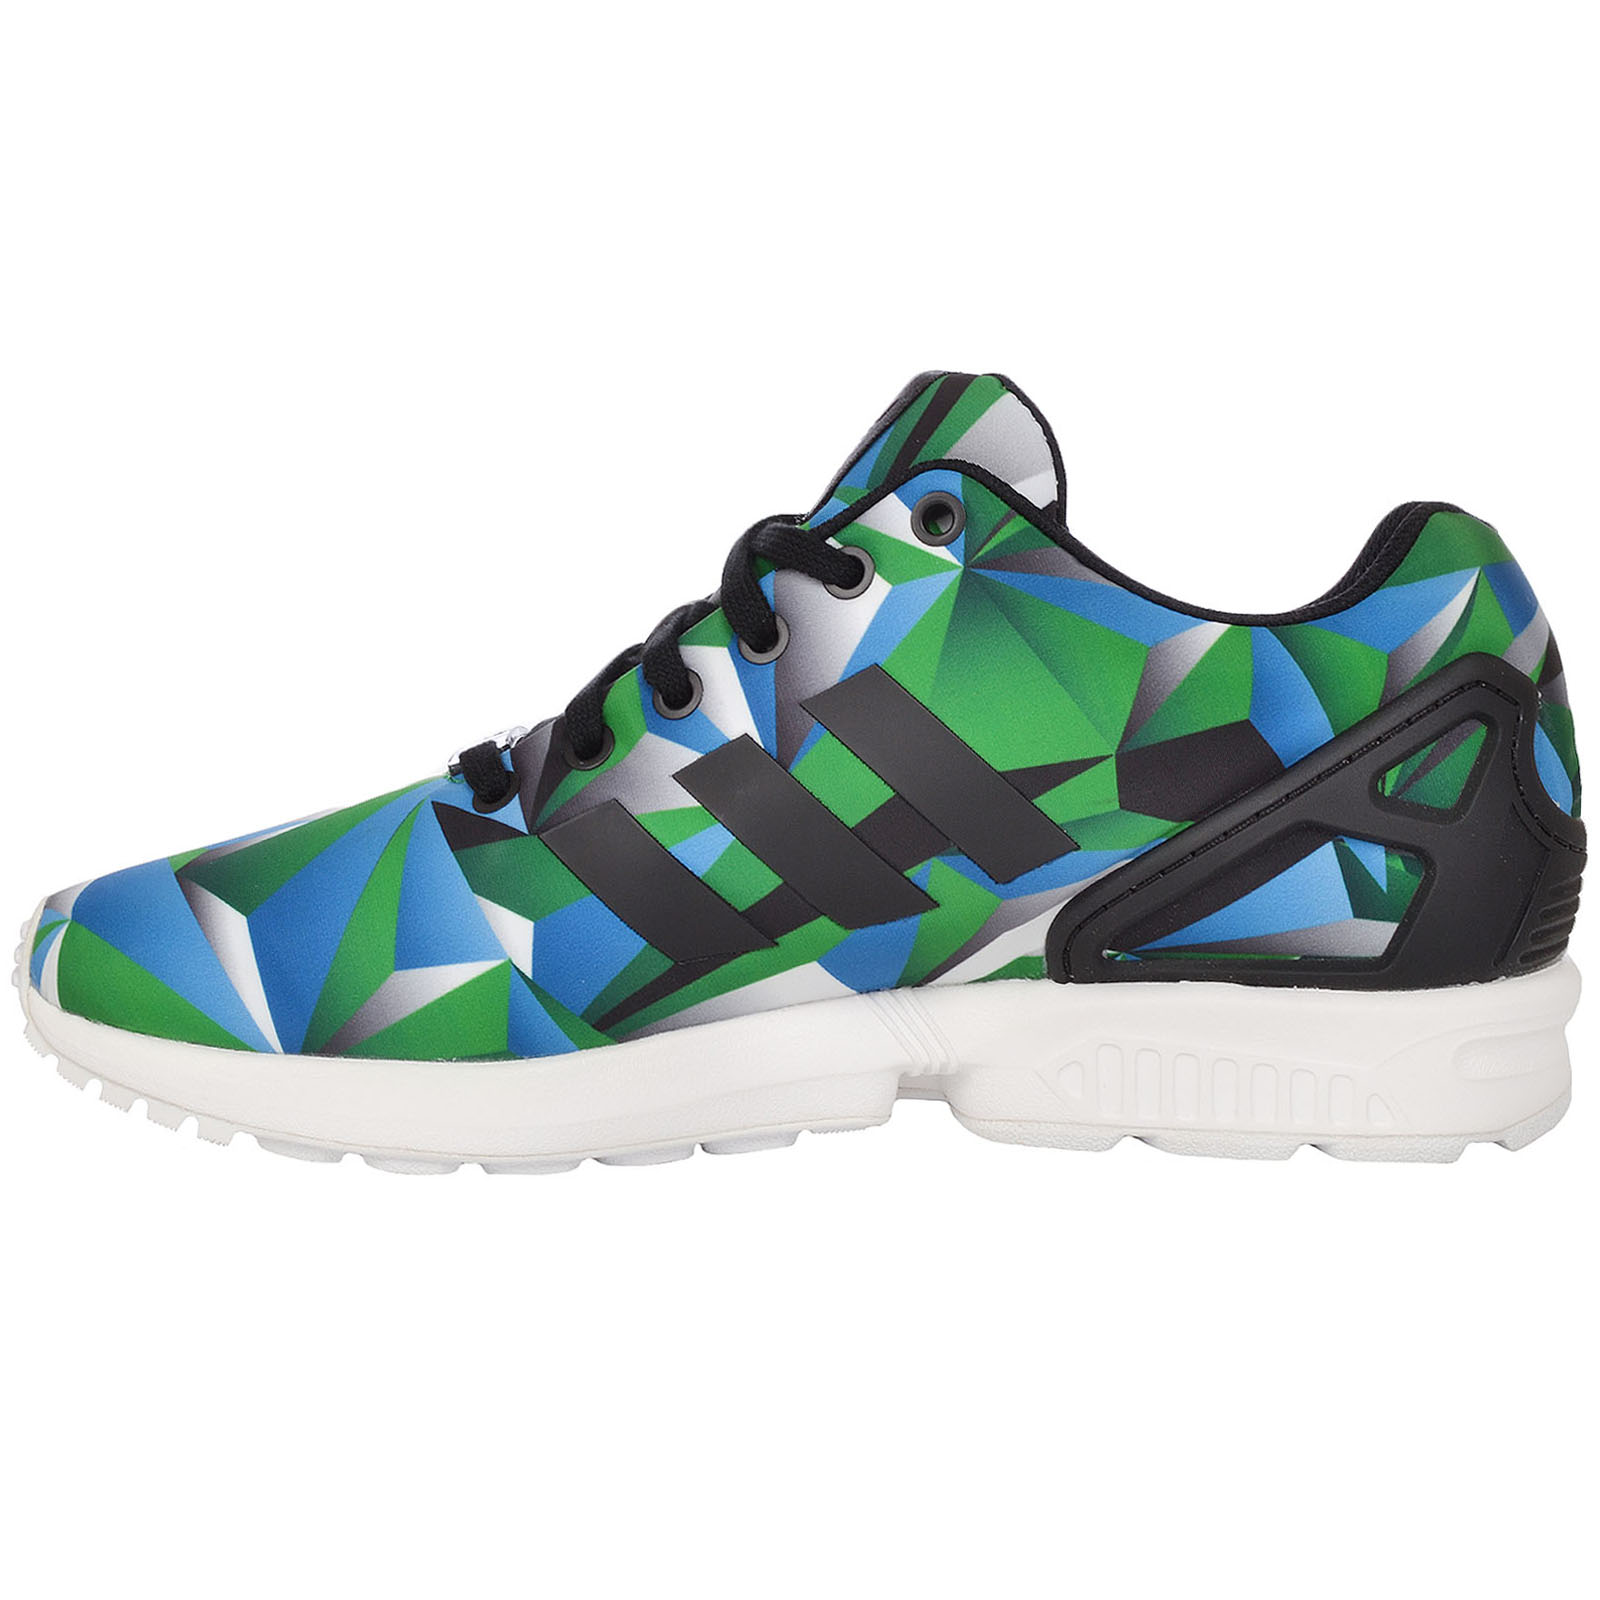 adidas zx flux xeno womens purple Sale,up to 36% Discounts